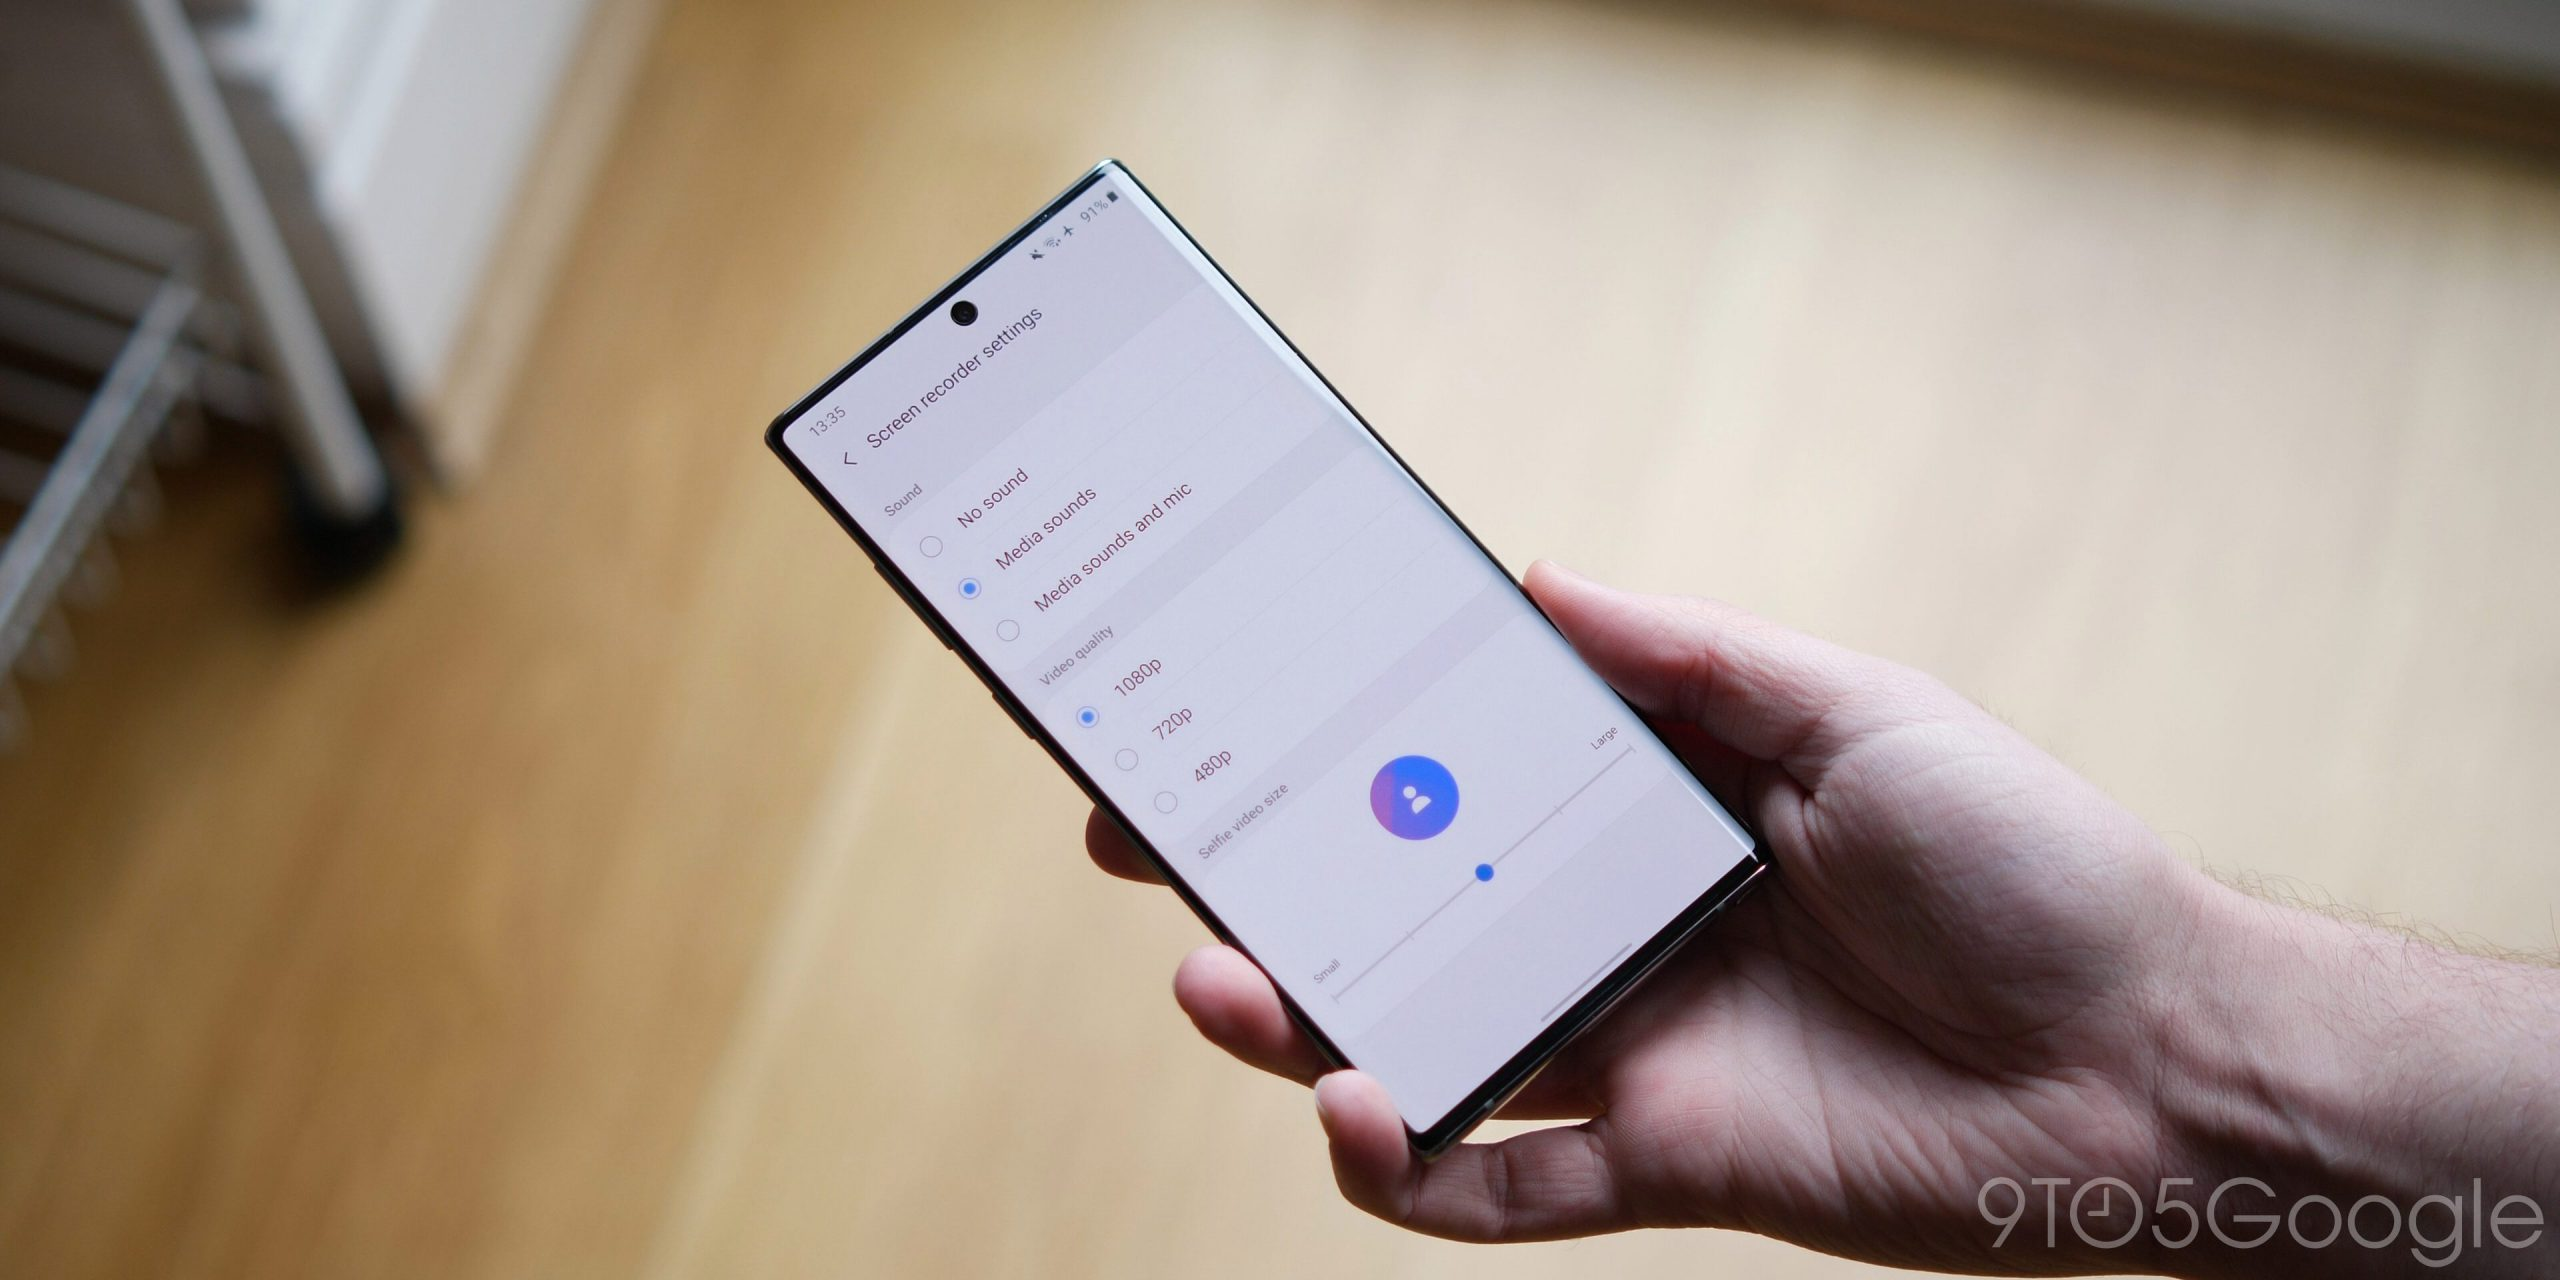 5 of the best features in Samsungs new One UI software